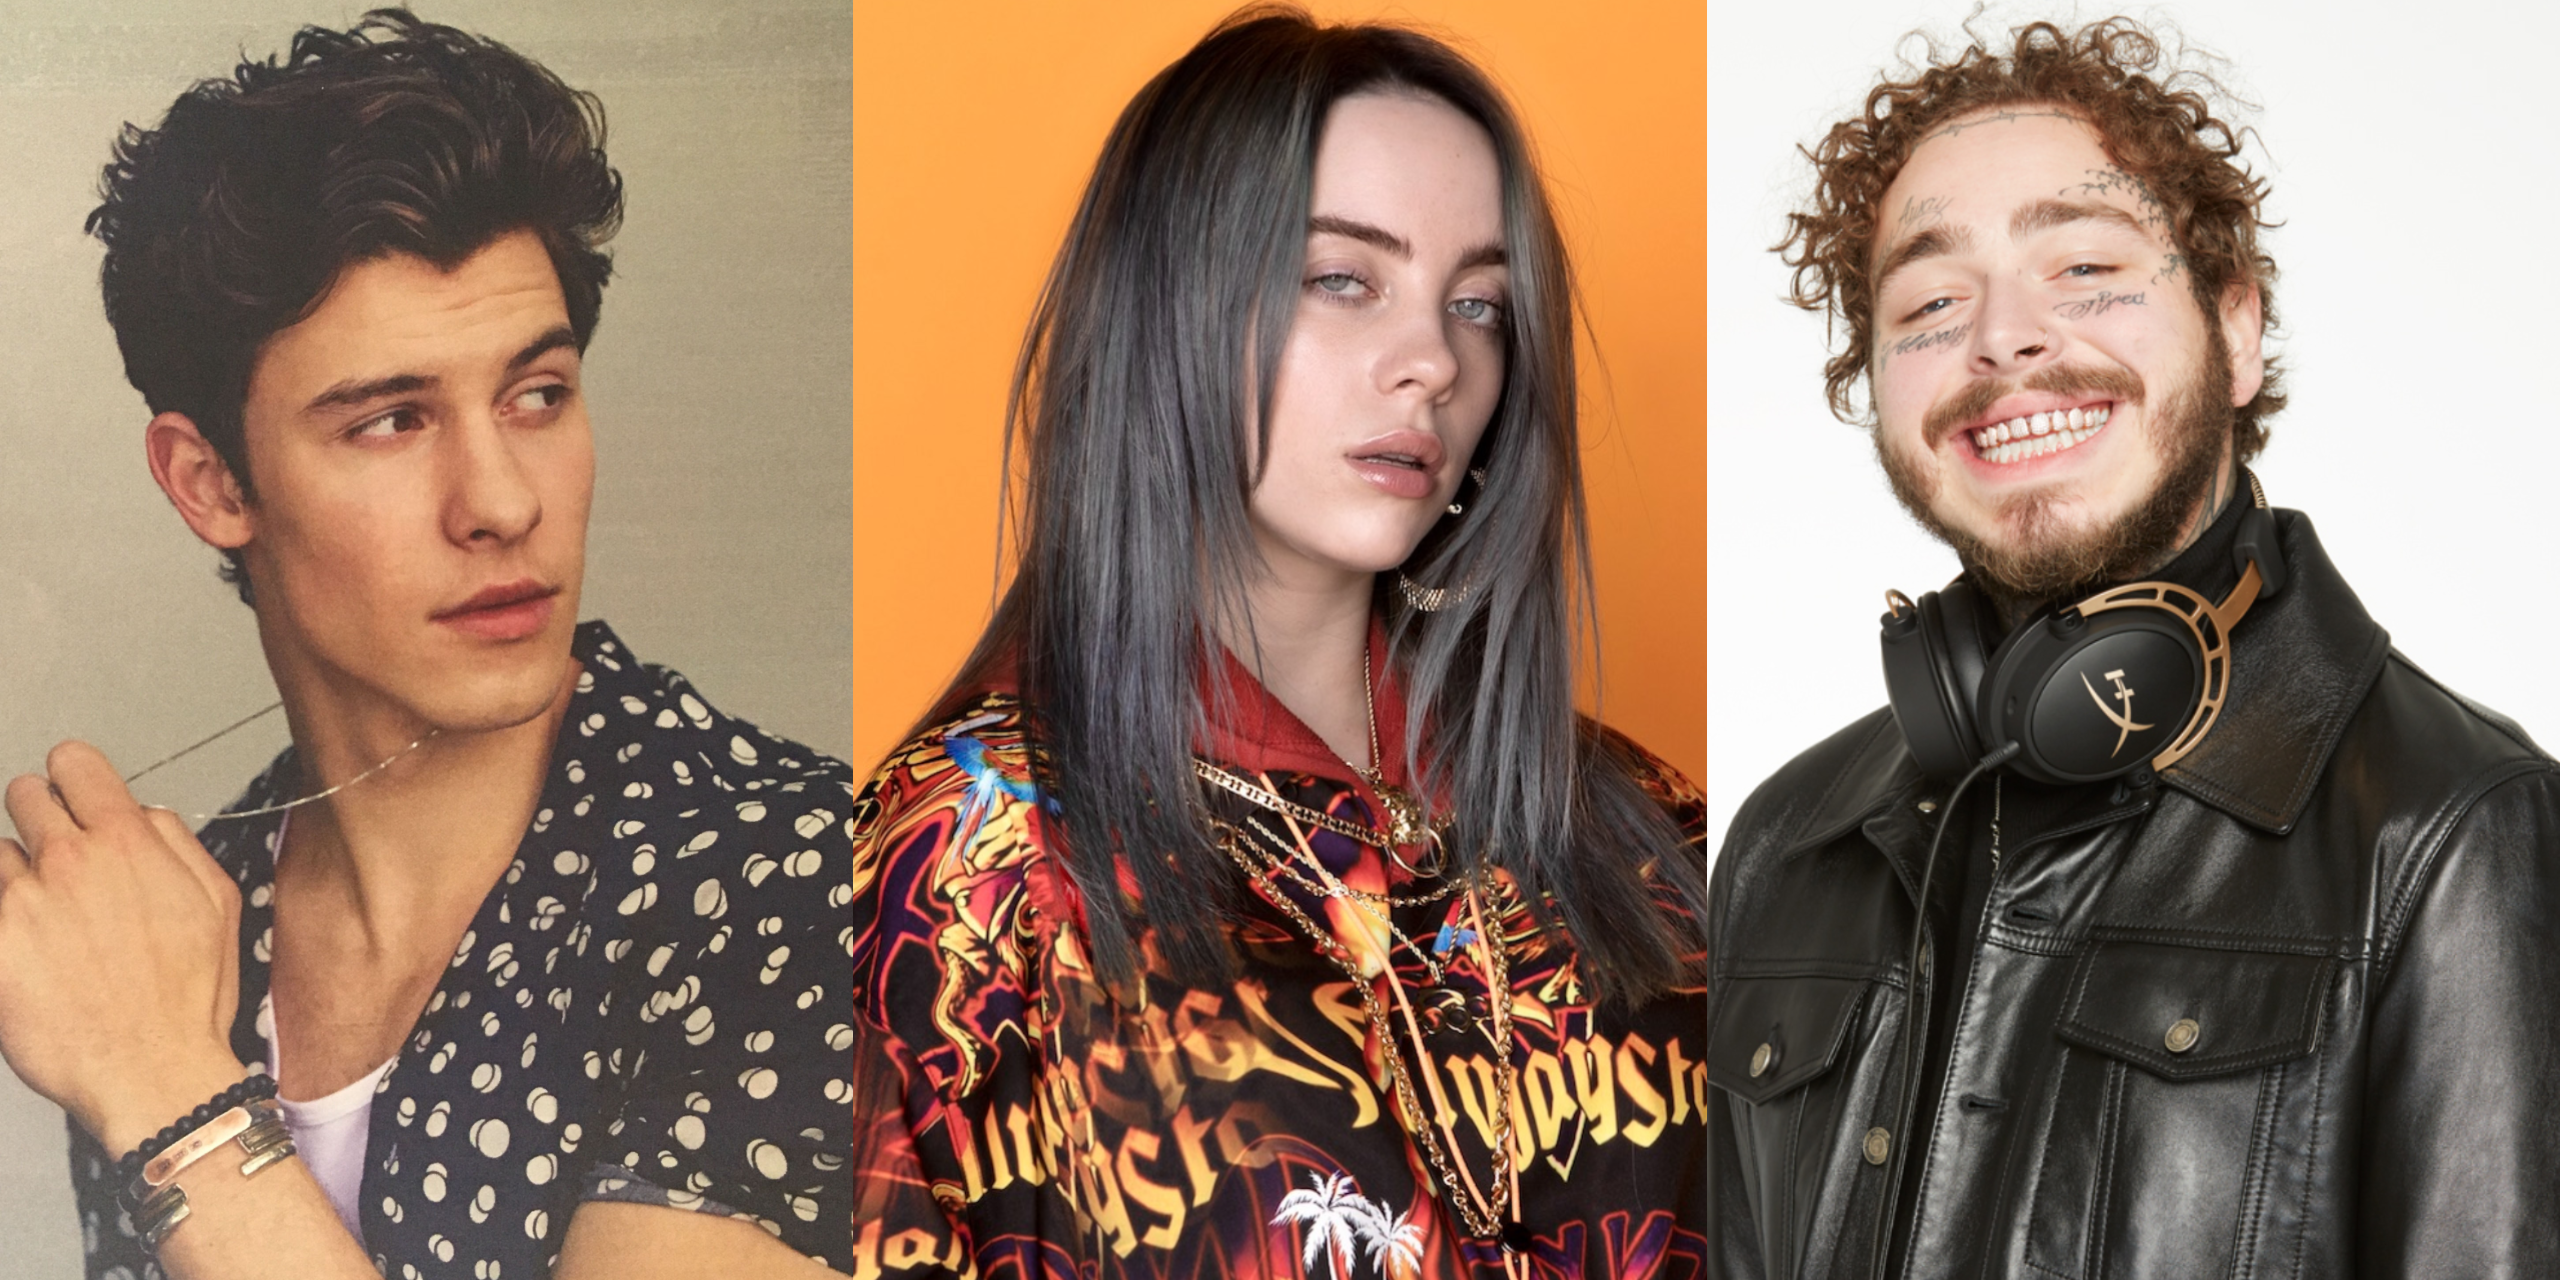 Billie Eilish, Post Malone and Shawn Mendes are among the most-streamed artists on Spotify in 2019